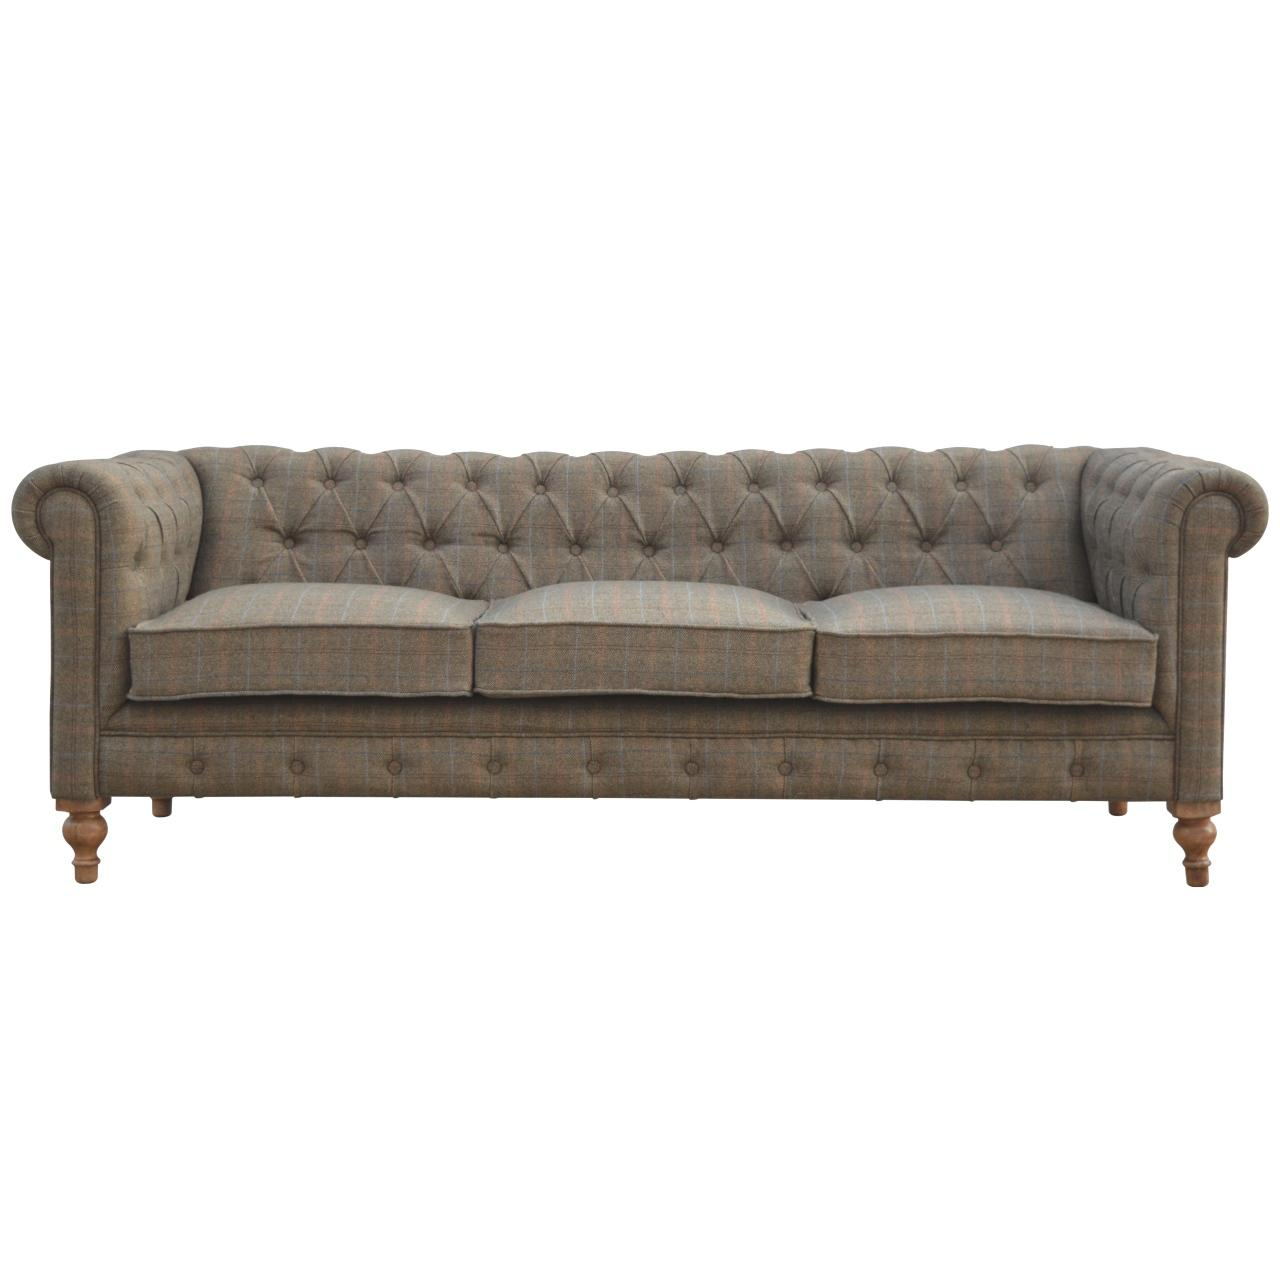 Multi Tweed Three Seater Chesterfield Sofa